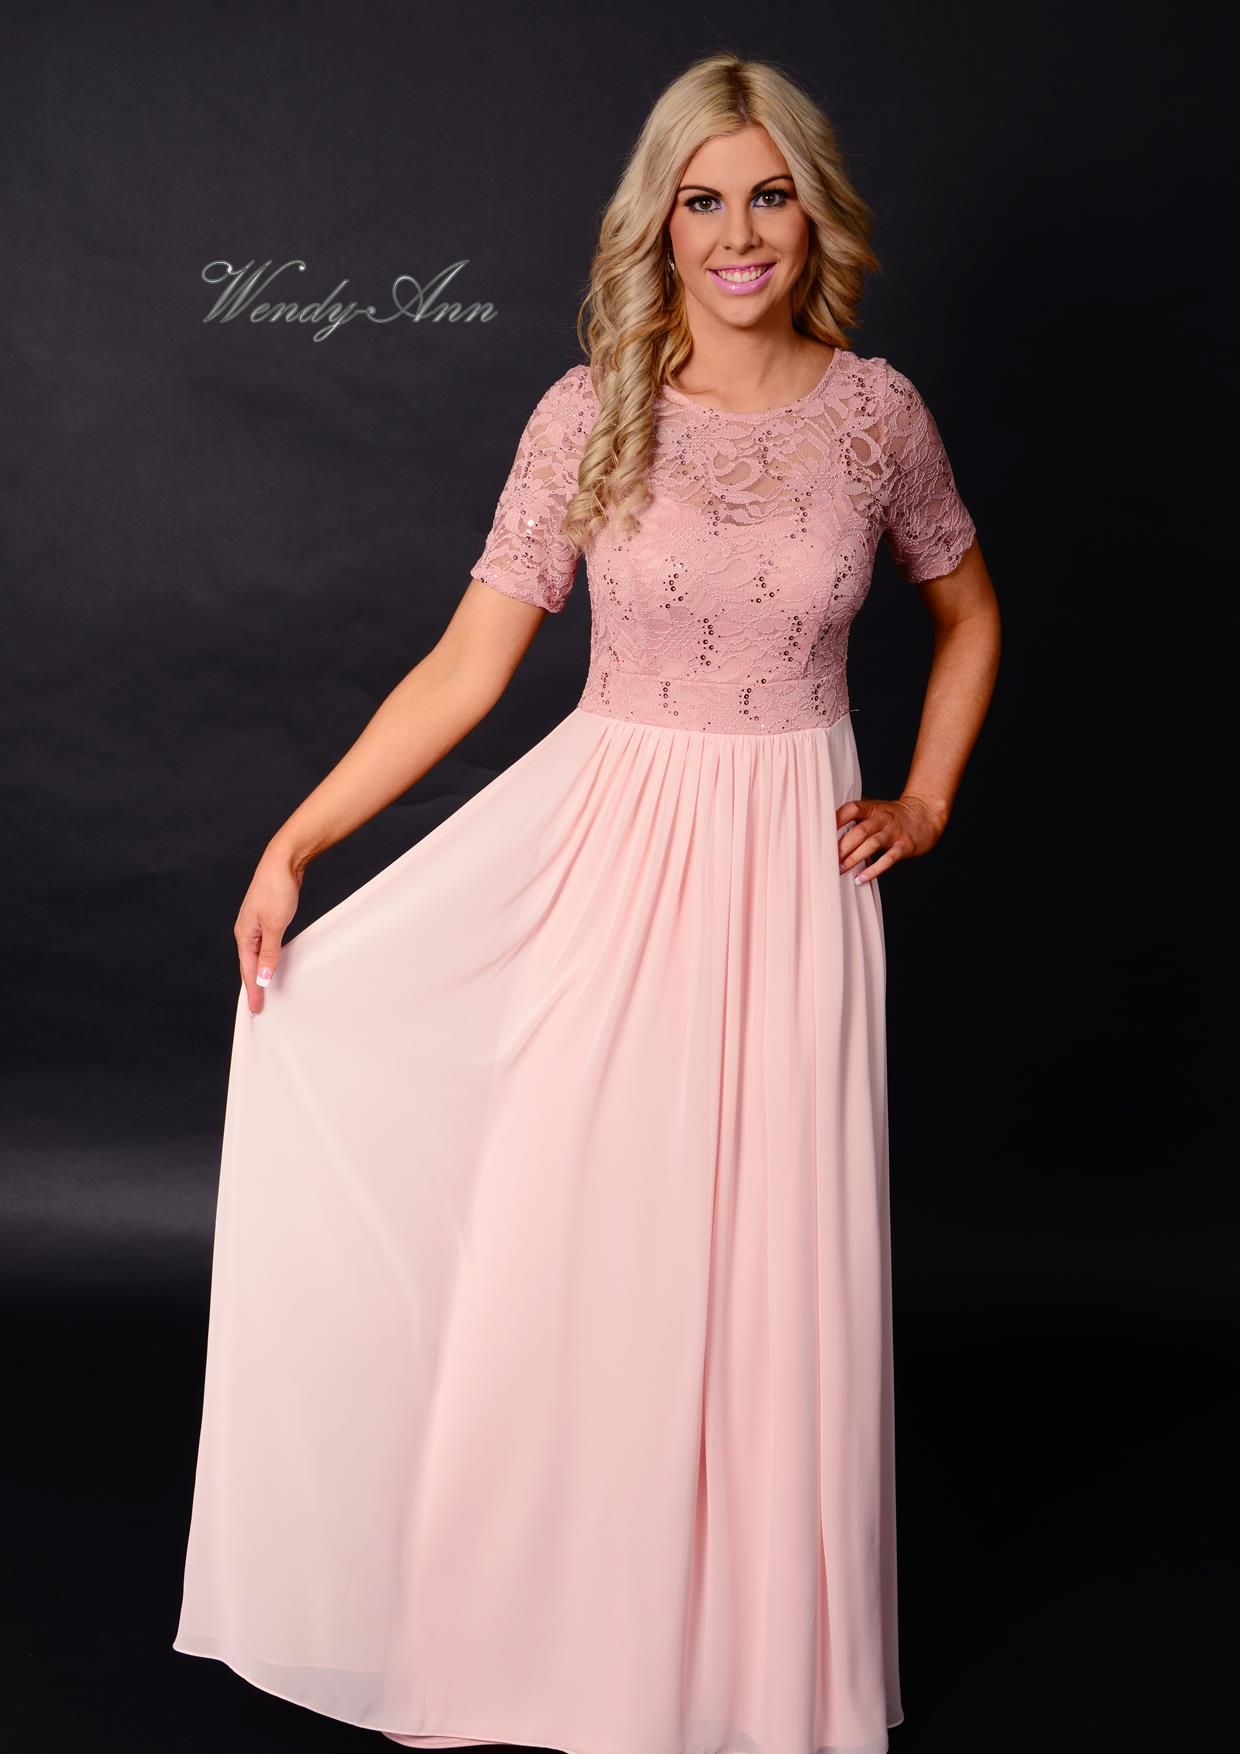 Wendy Ann Bridesmaids dresses available at Etcetera Fashion & Bridal ...